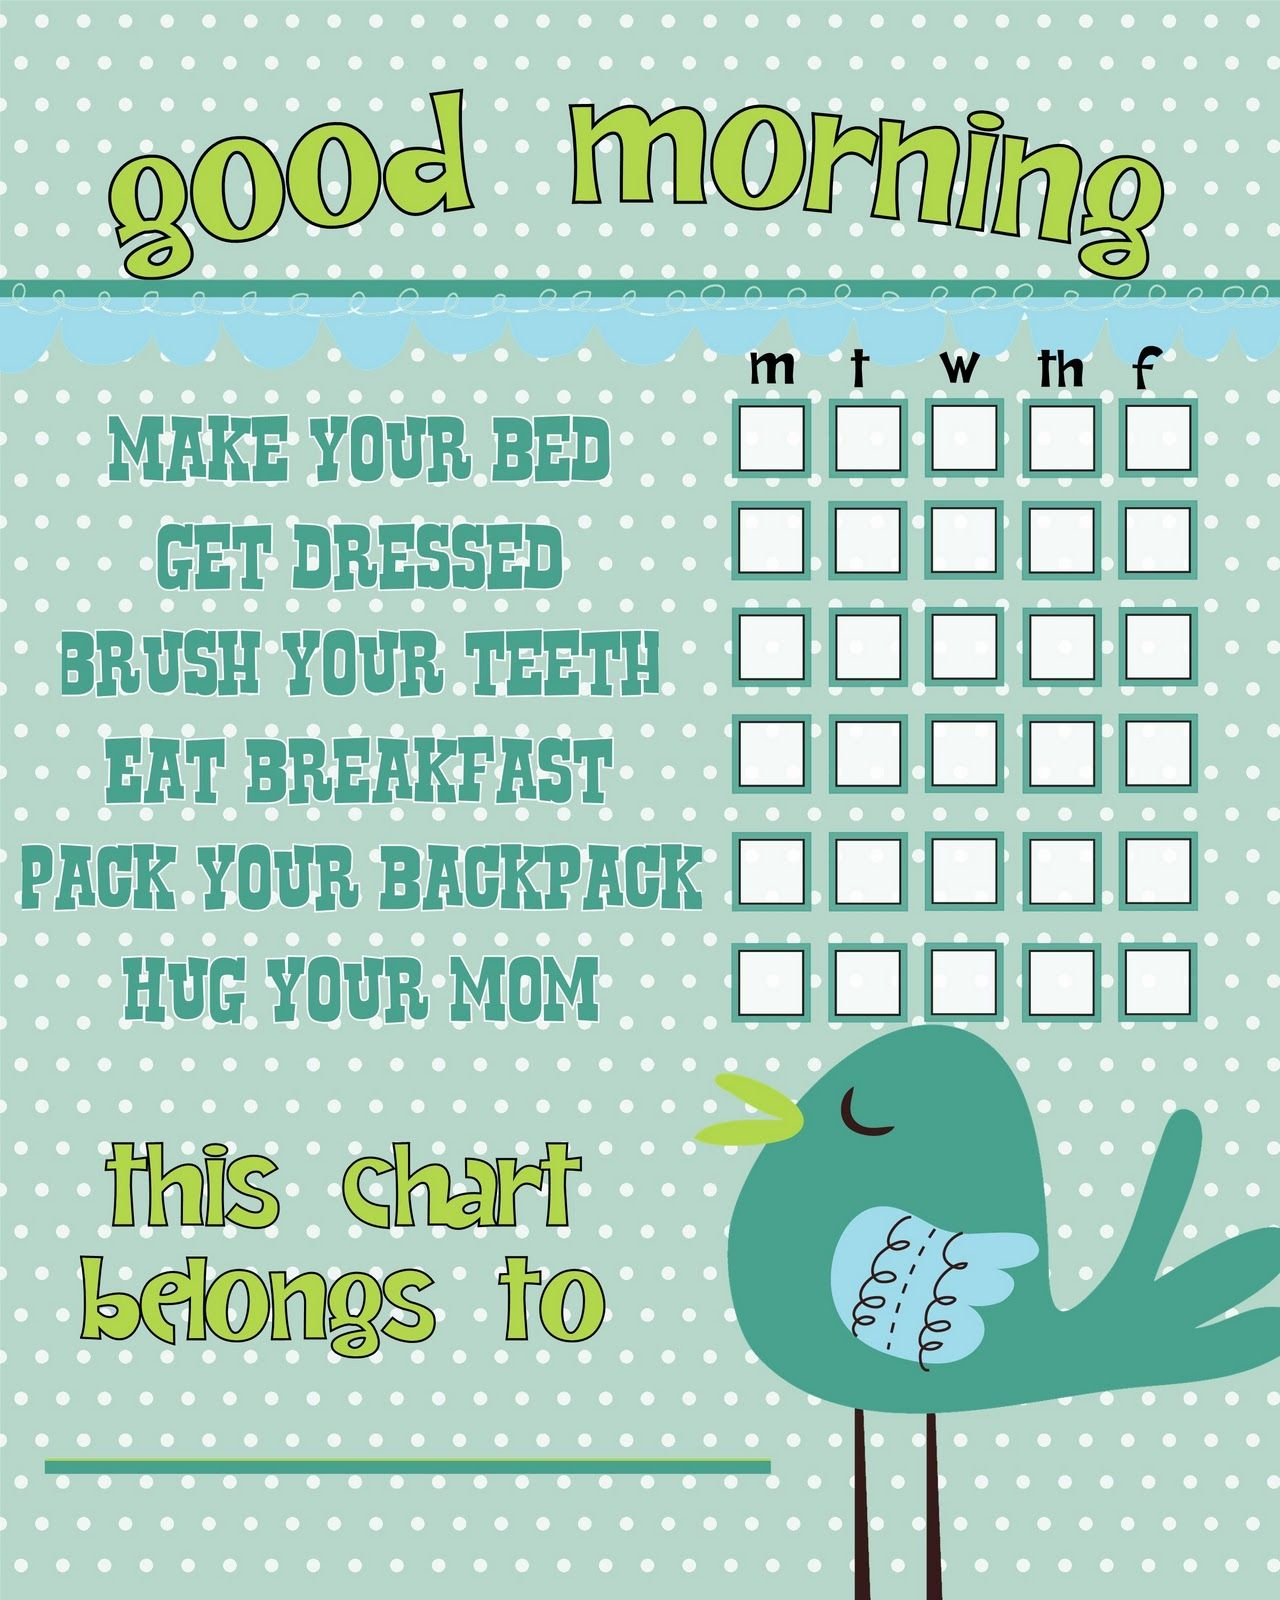 Cute Chore Chart Idea I Need To Revise This For A Bedtime Chart